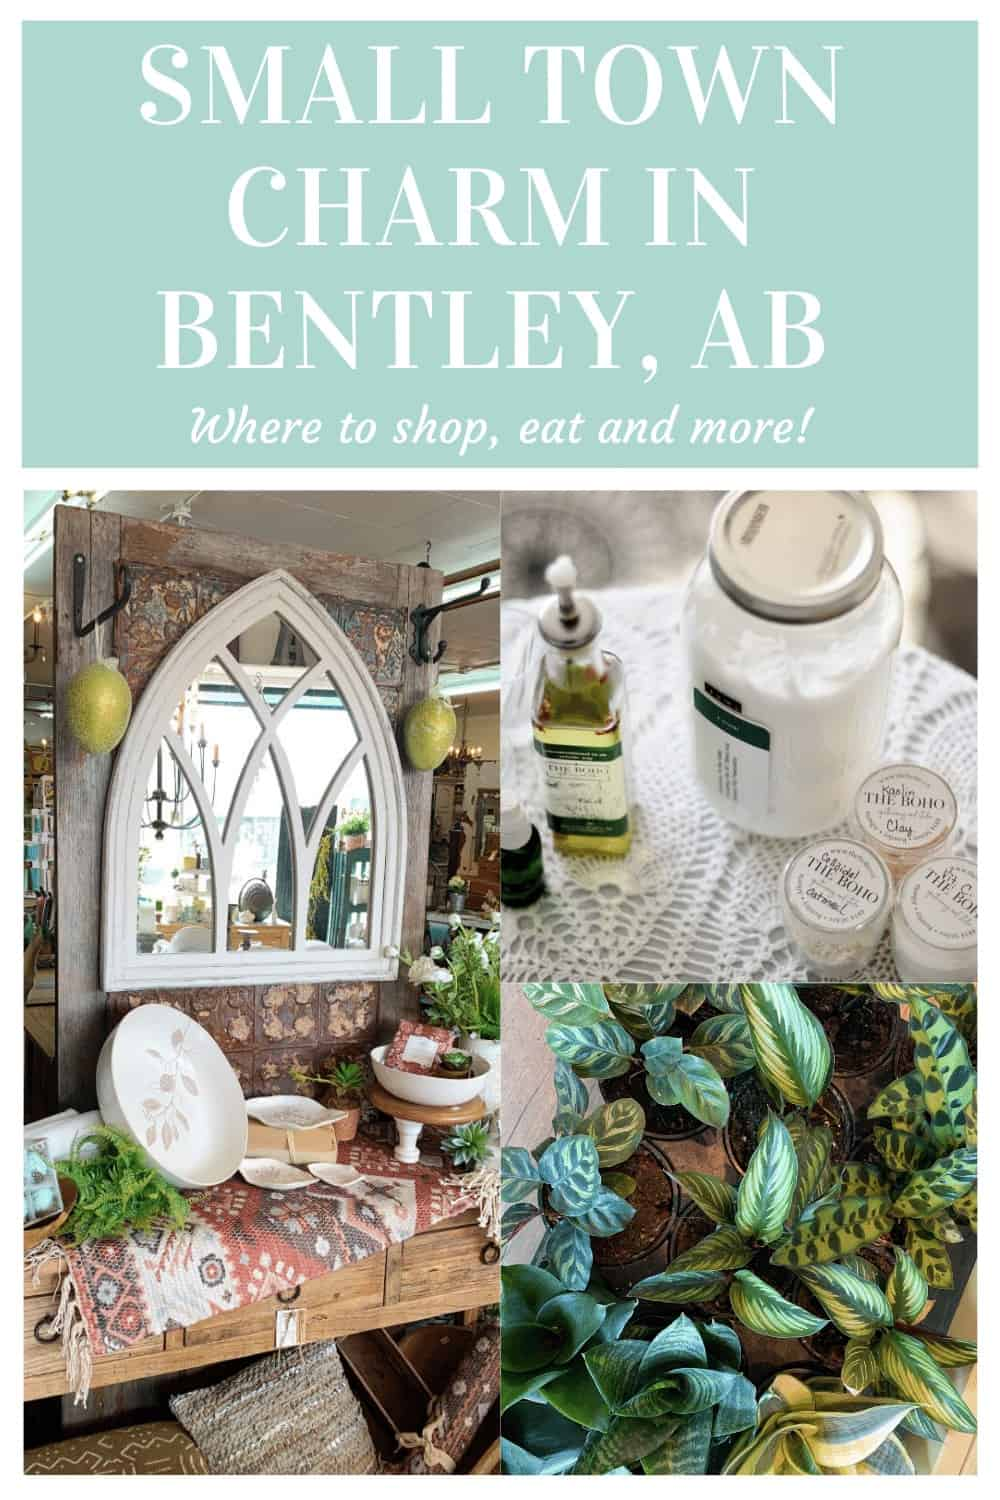 Scenes from Bentley Alberta shops